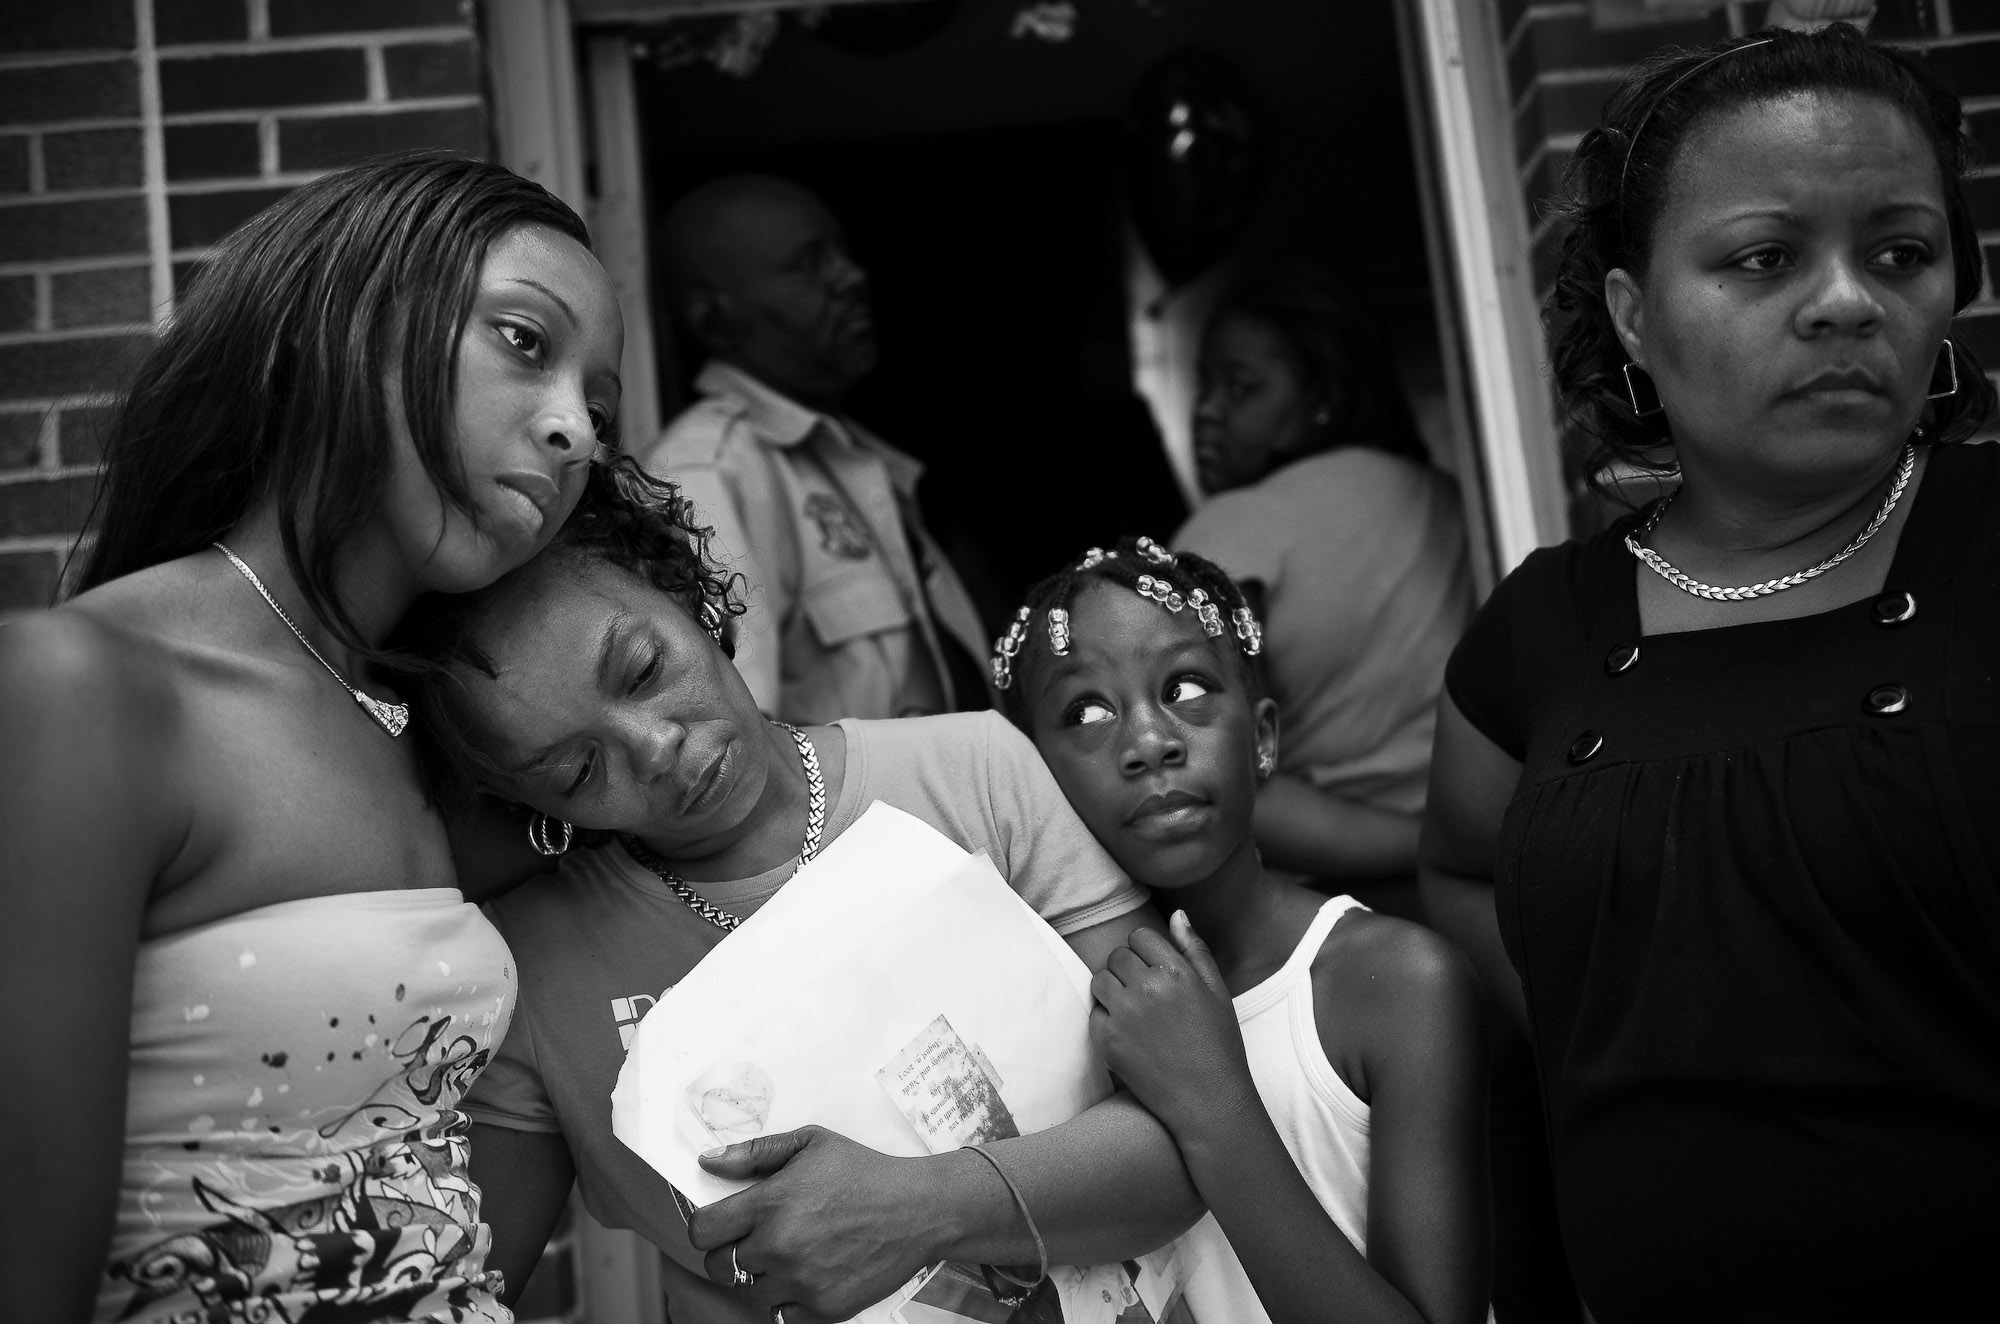 Sharonda Melvin, the mother of a 17 year old killed Saturday at MLK Blvd and Kinney St. in Newark, NJ is comforted at home Sunday afternoon surrounded by family members Angela Gainer (left), Chante Gedeon (center) and Sharon Melvin (right).   Photographed for The Star-Ledger